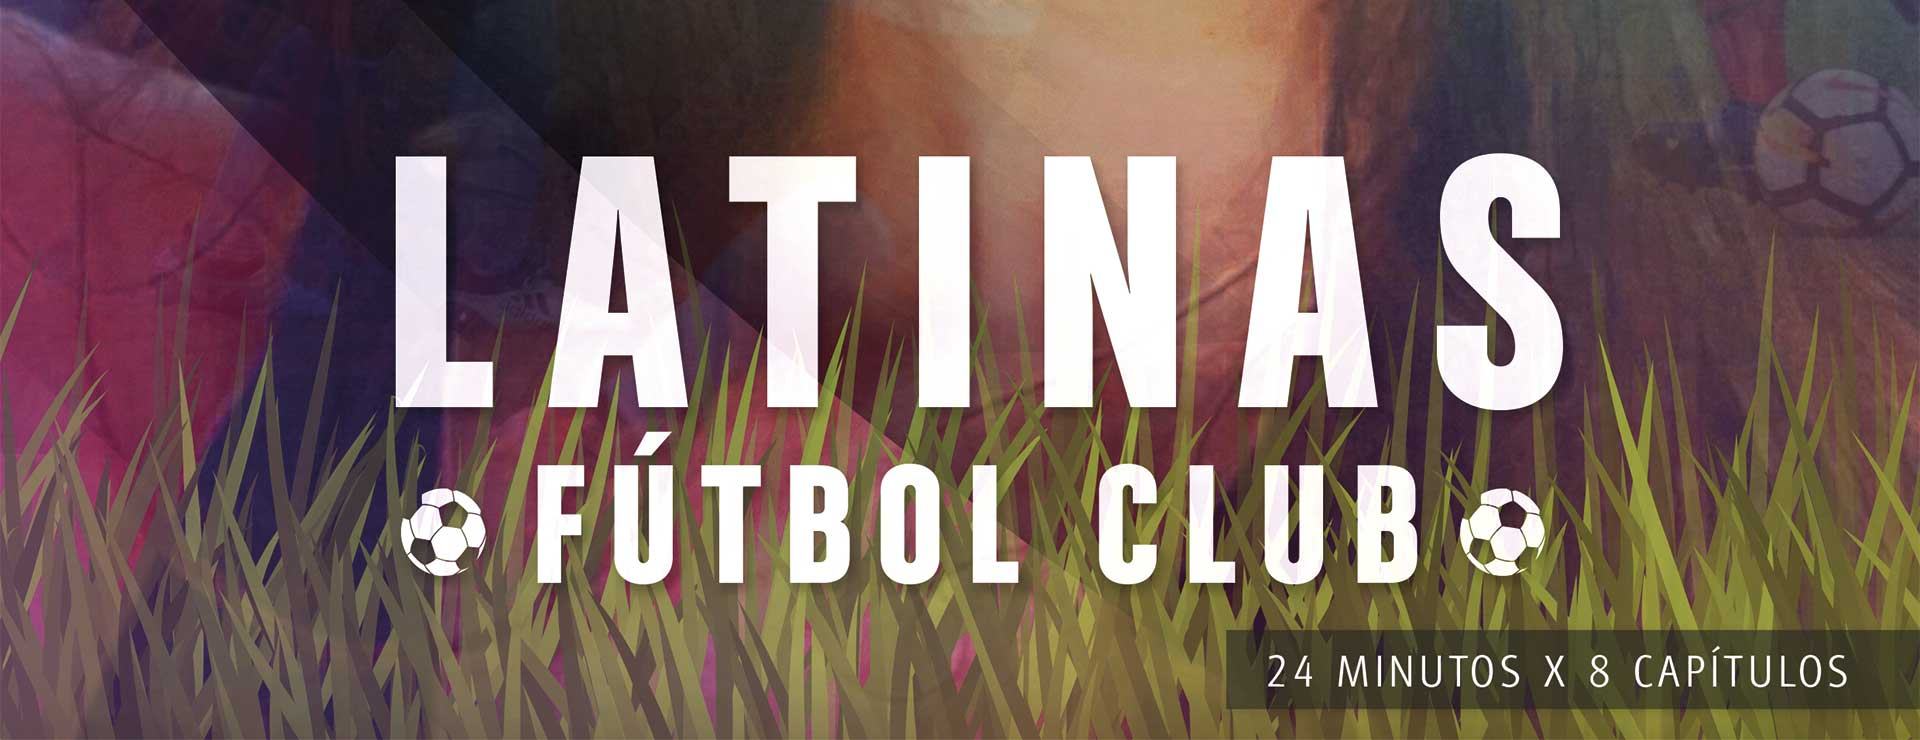 Latinas Fútbol Club